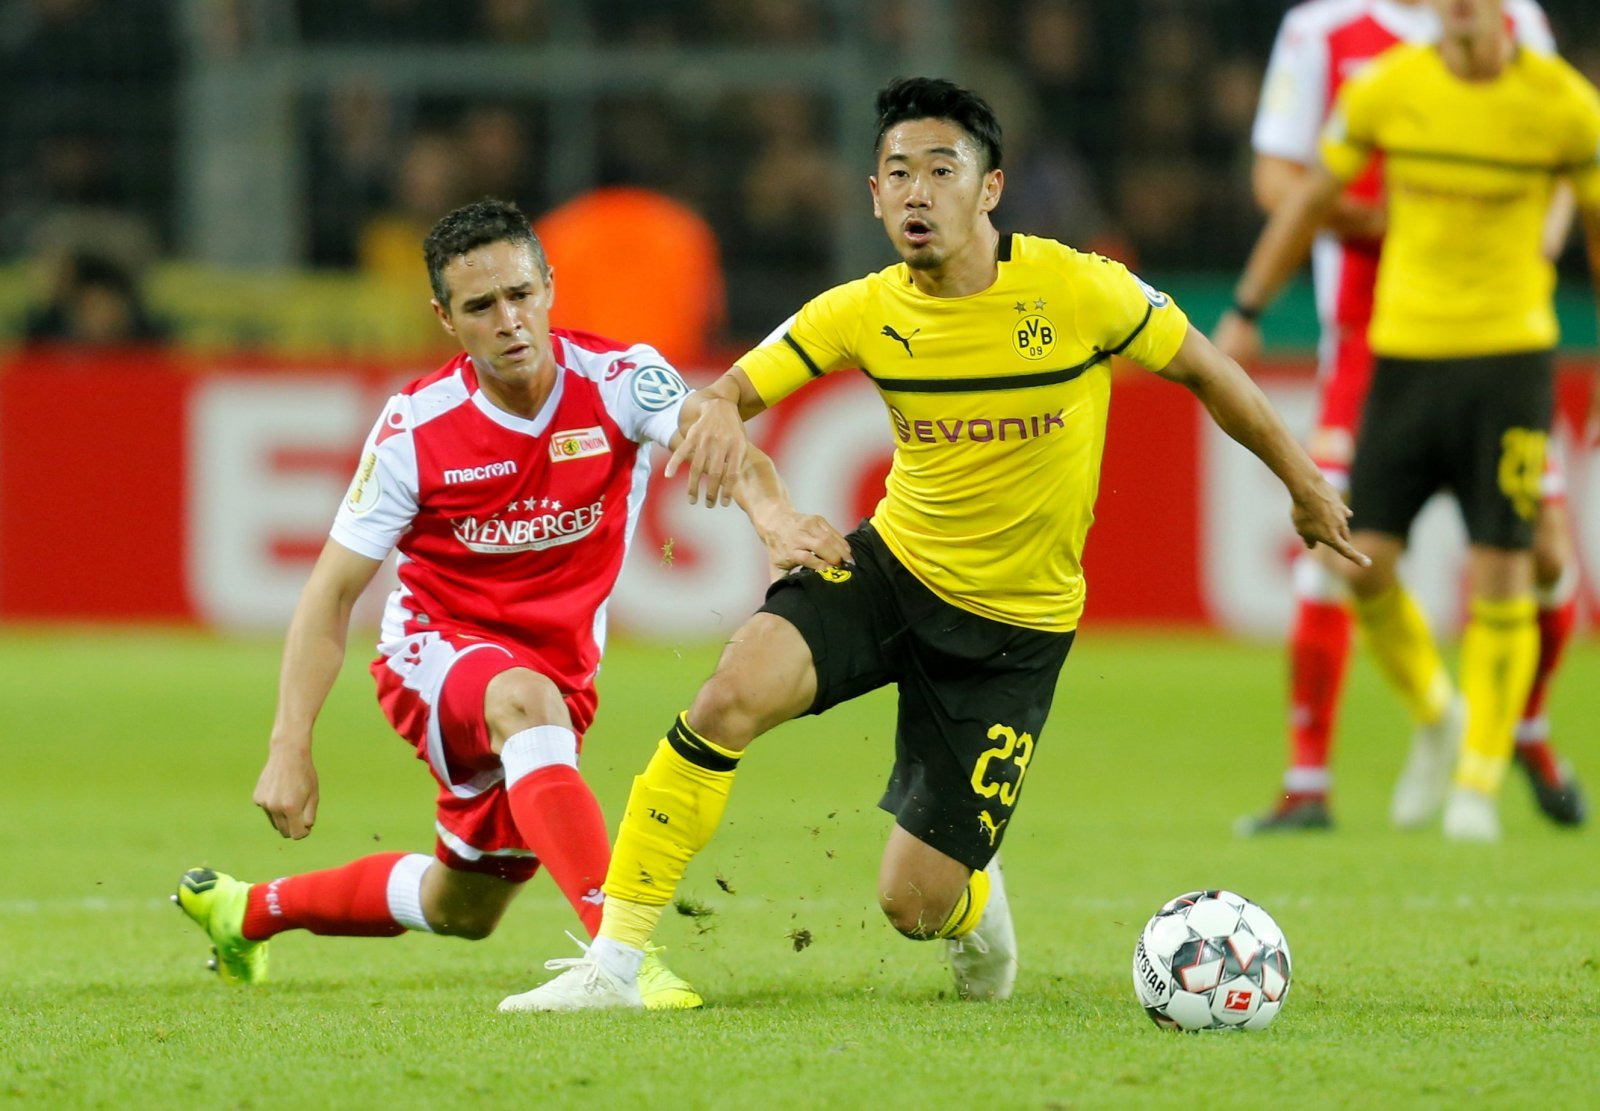 Everton move for Shinji Kagawa would be an absolute waste of time and money